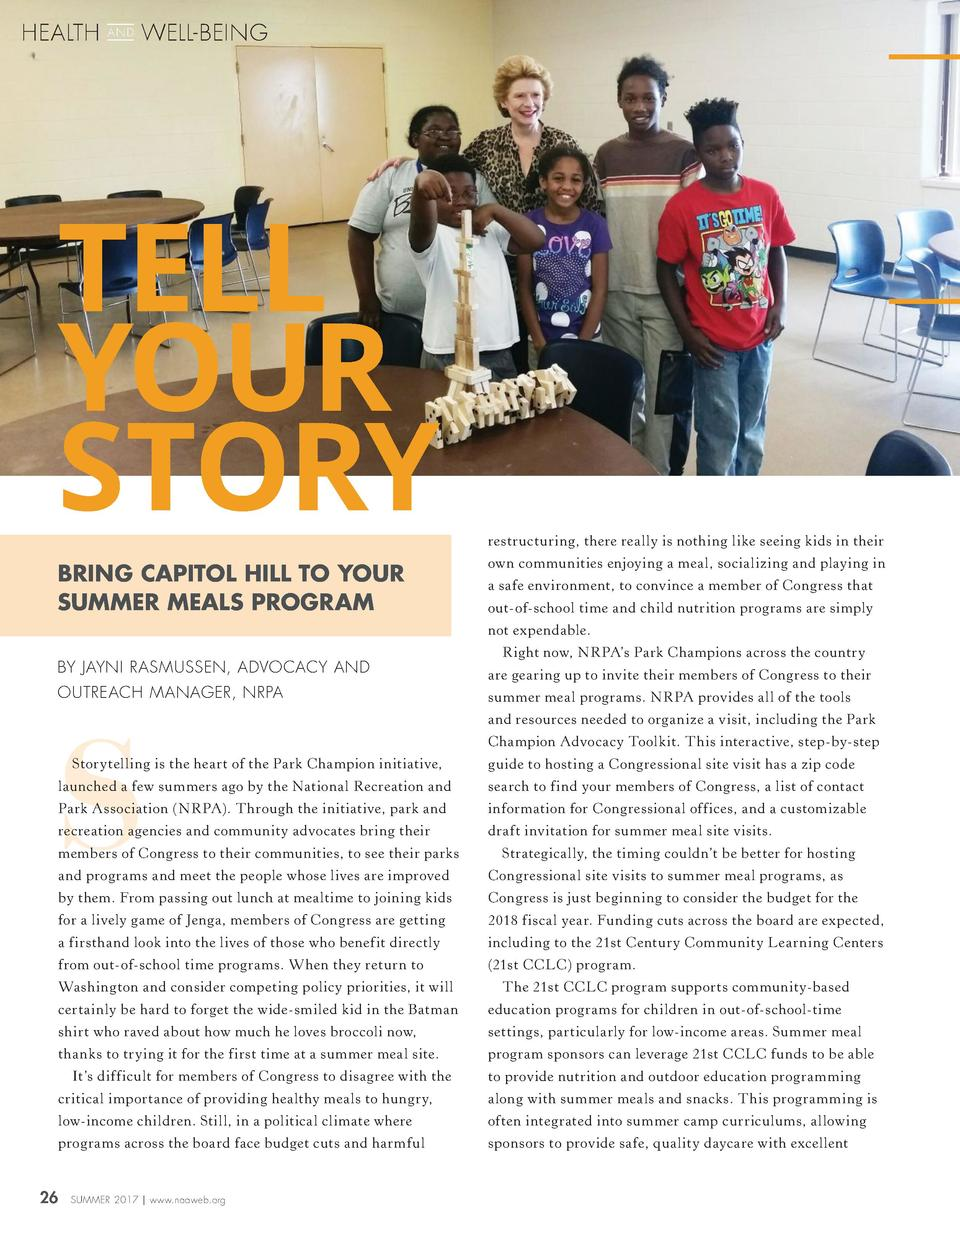 HEALTH  AND  WELL-BEING  TELL YOUR STORY BRING CAPITOL HILL TO YOUR SUMMER MEALS PROGRAM  restructuring, there really is n...